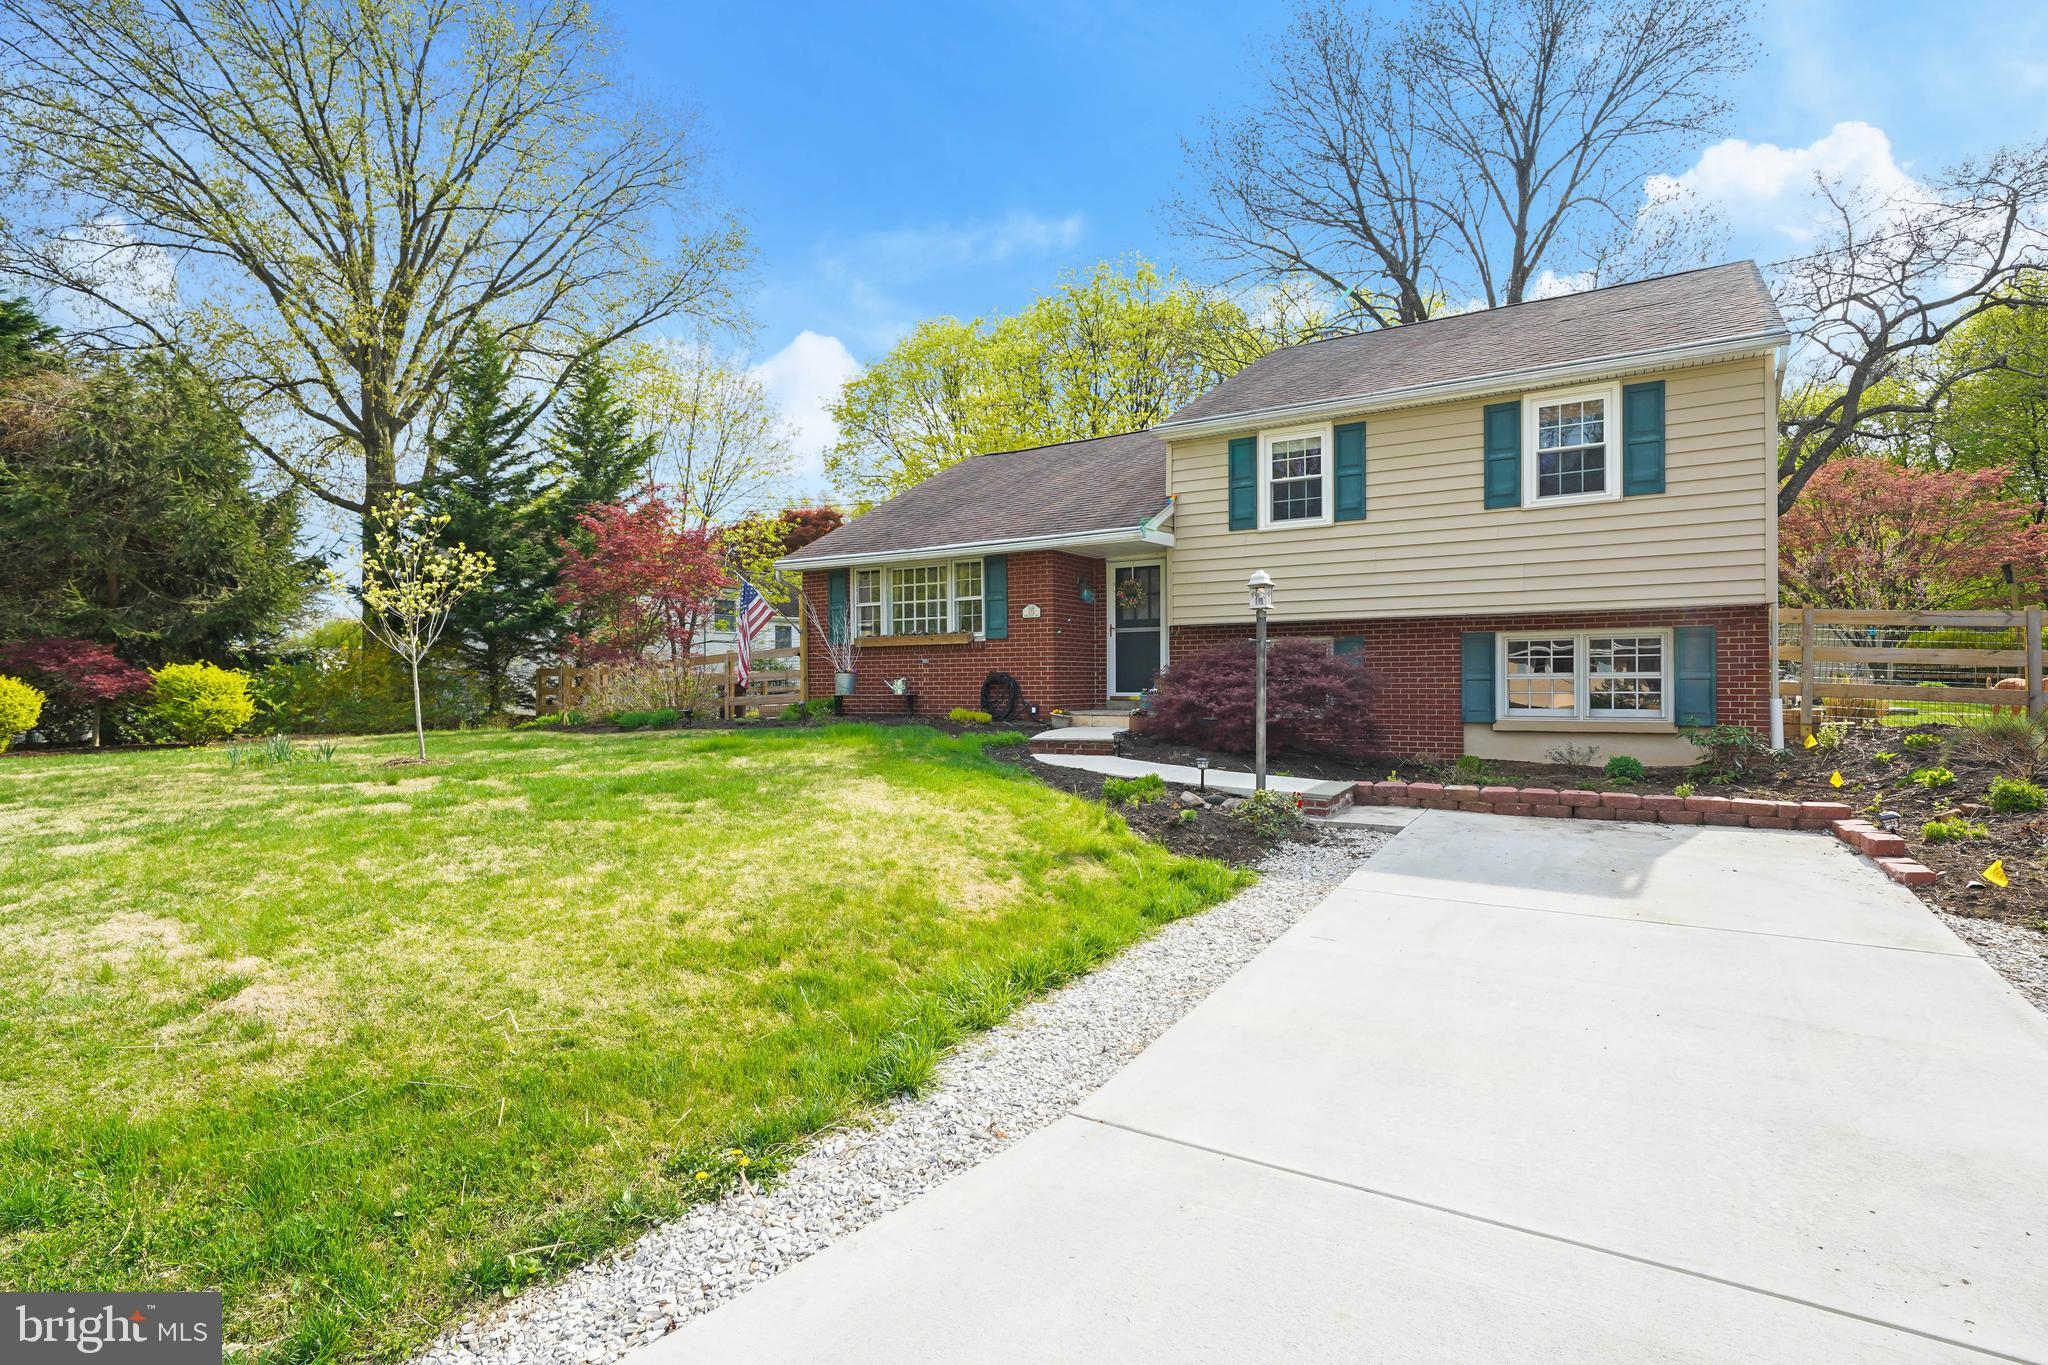 Welcome to this beautifully updated single family home in Tredyffrin-Easttown School District!  A rare find in T-E School District for less than $700K!  The first floor offers a stunning open layout floor plan with a kitchen equipped with a professional range and a family room with large windows overlooking the backyard.  The back yard features two sizable patios, perfect for entertaining!  There is a recreation room on the first floor currently being used as a billiard room, which could also be used as a formal dining area.  The upper level offers 3 bedrooms and a full bathroom.  The lower level has a Home Office, living room area, and a laundry area.  This home is within walking distance to restaurants and Berwyn train station.  Schedule your showing today!